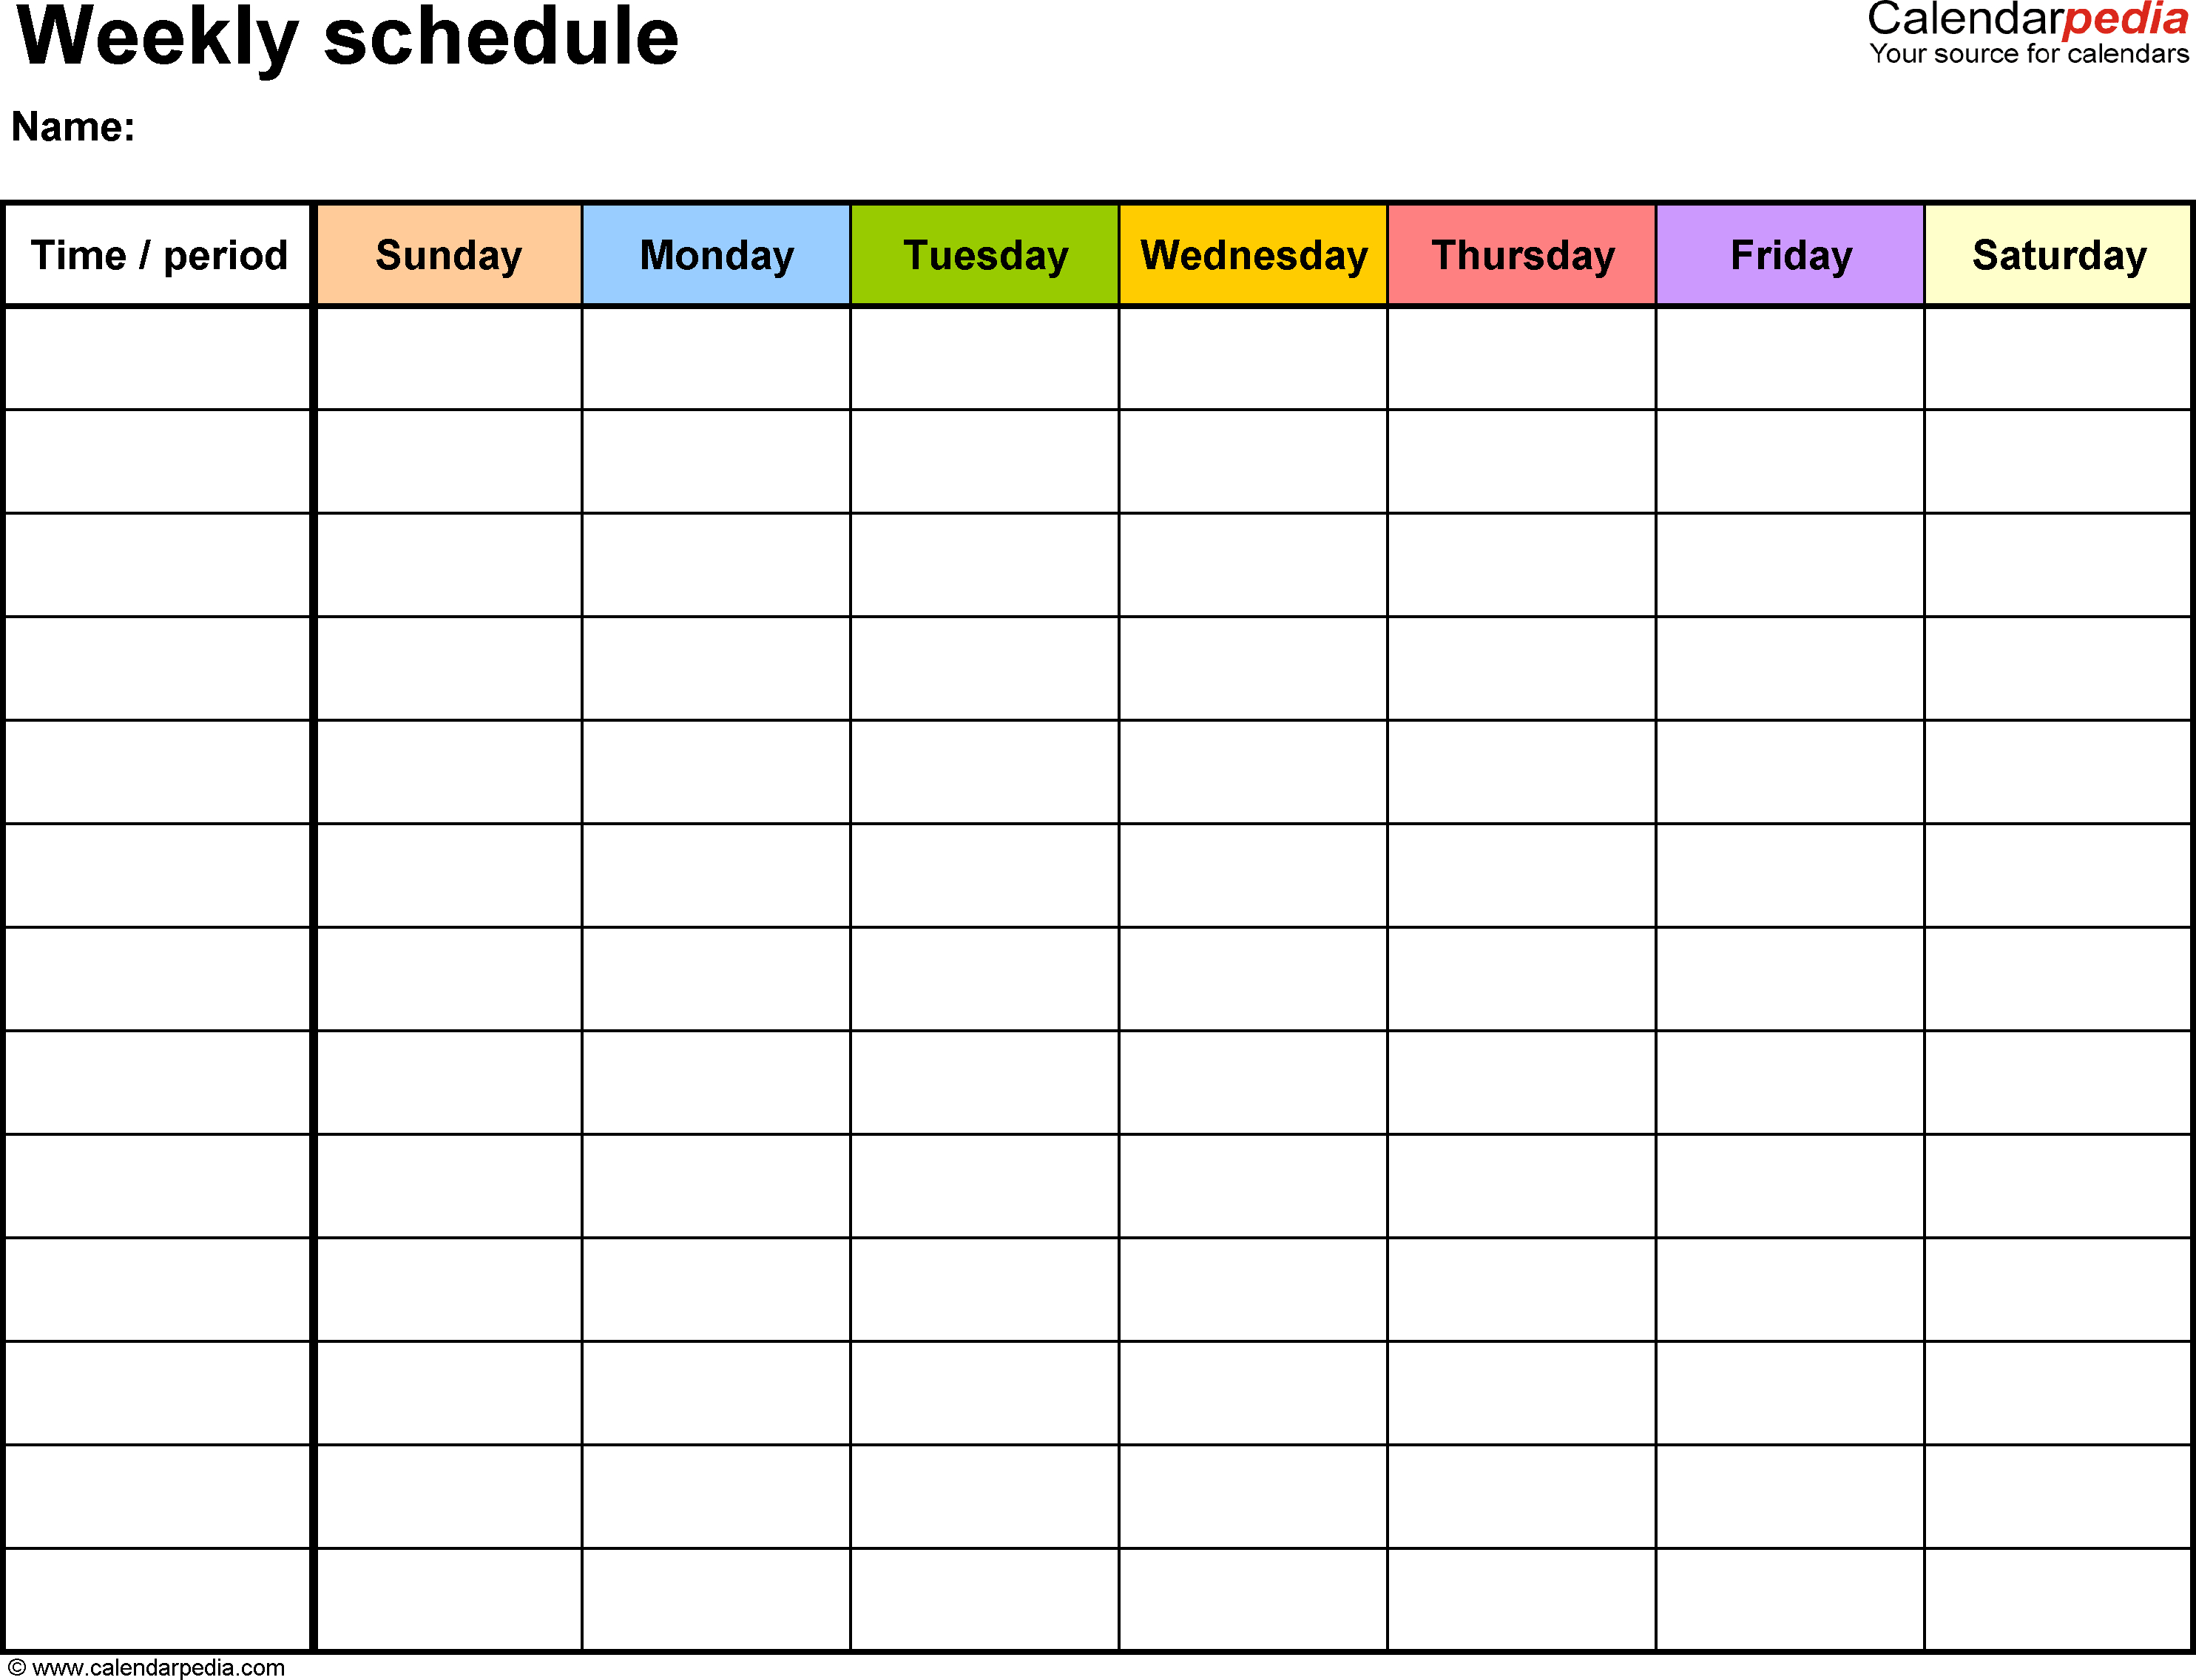 Free Weekly Schedule Templates For Word - 18 Templates inside Monday - Sunday Calendar Template